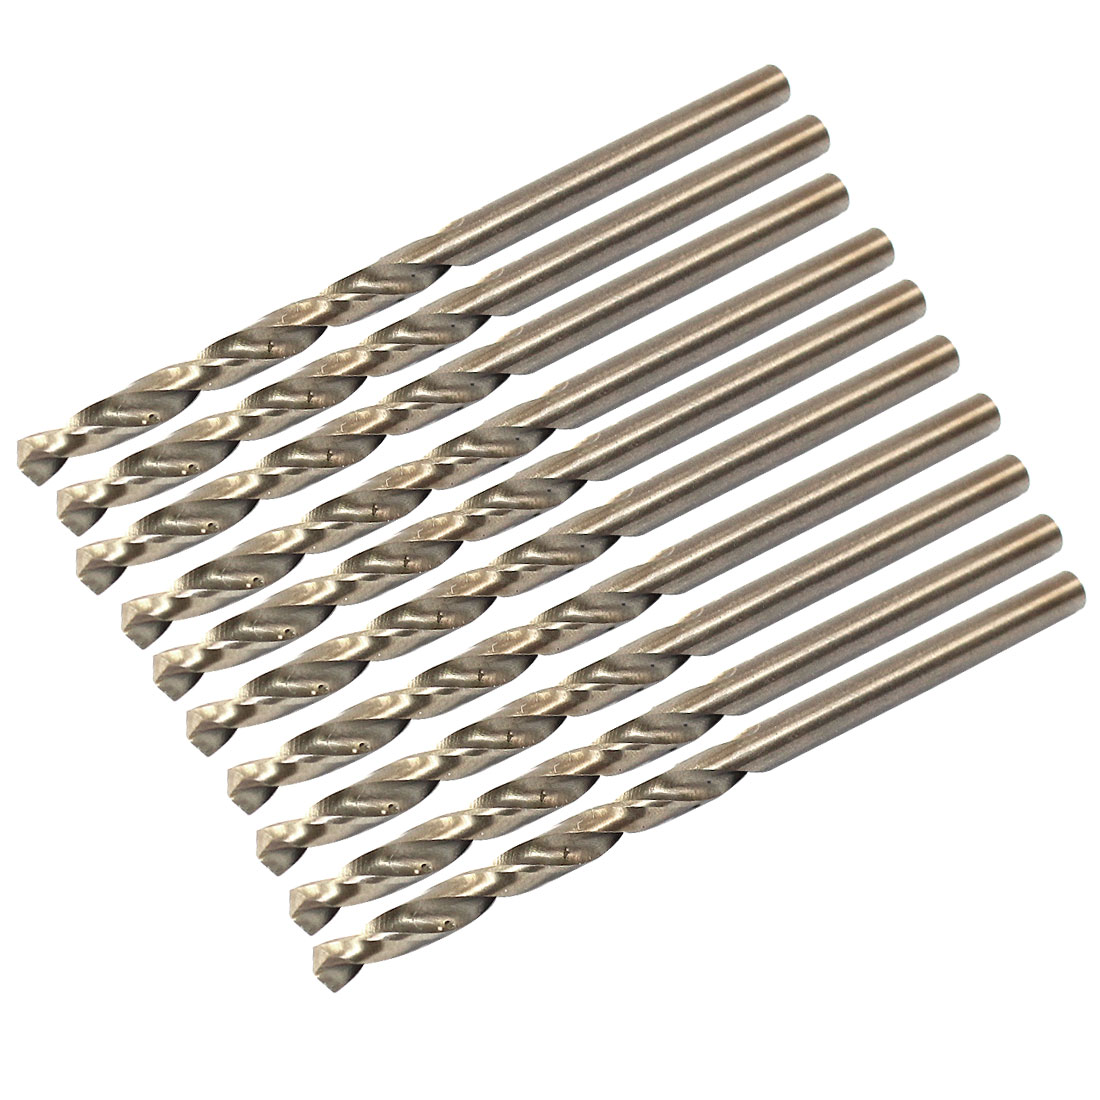 3.3mm Dia 35mm Flute Long High Speed Steel Cobalt Spiral Twist Drill Bit 10pcs